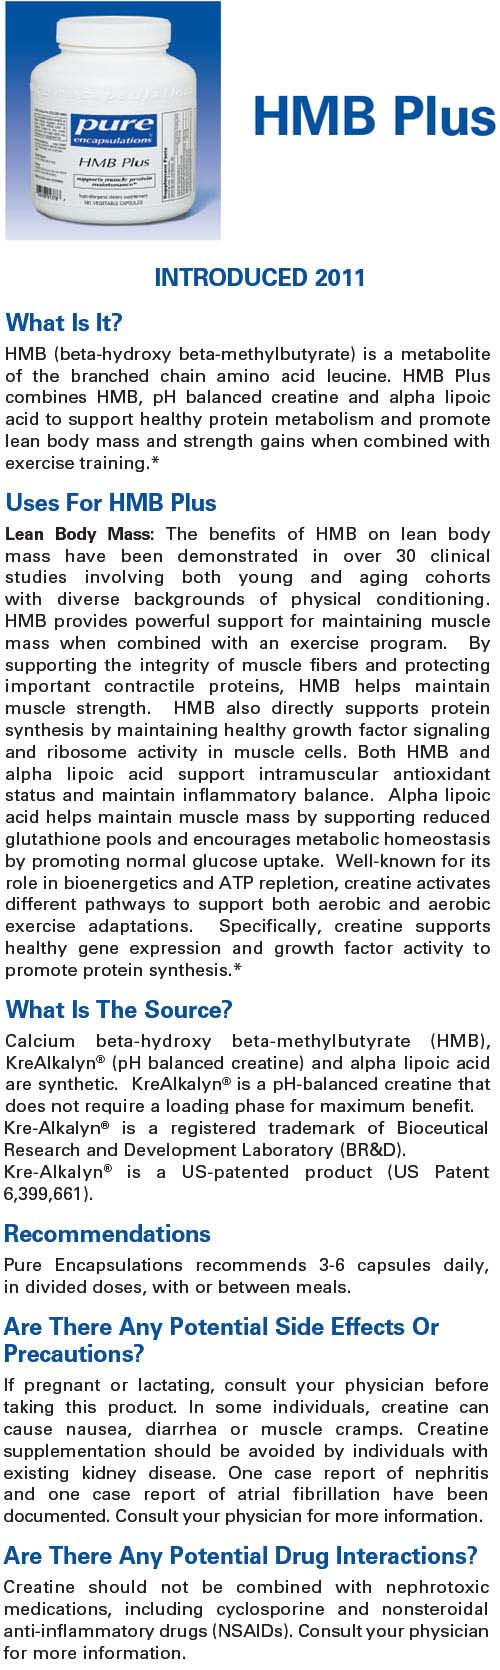 hmb plus pure encapsulations bodybuilding supplements